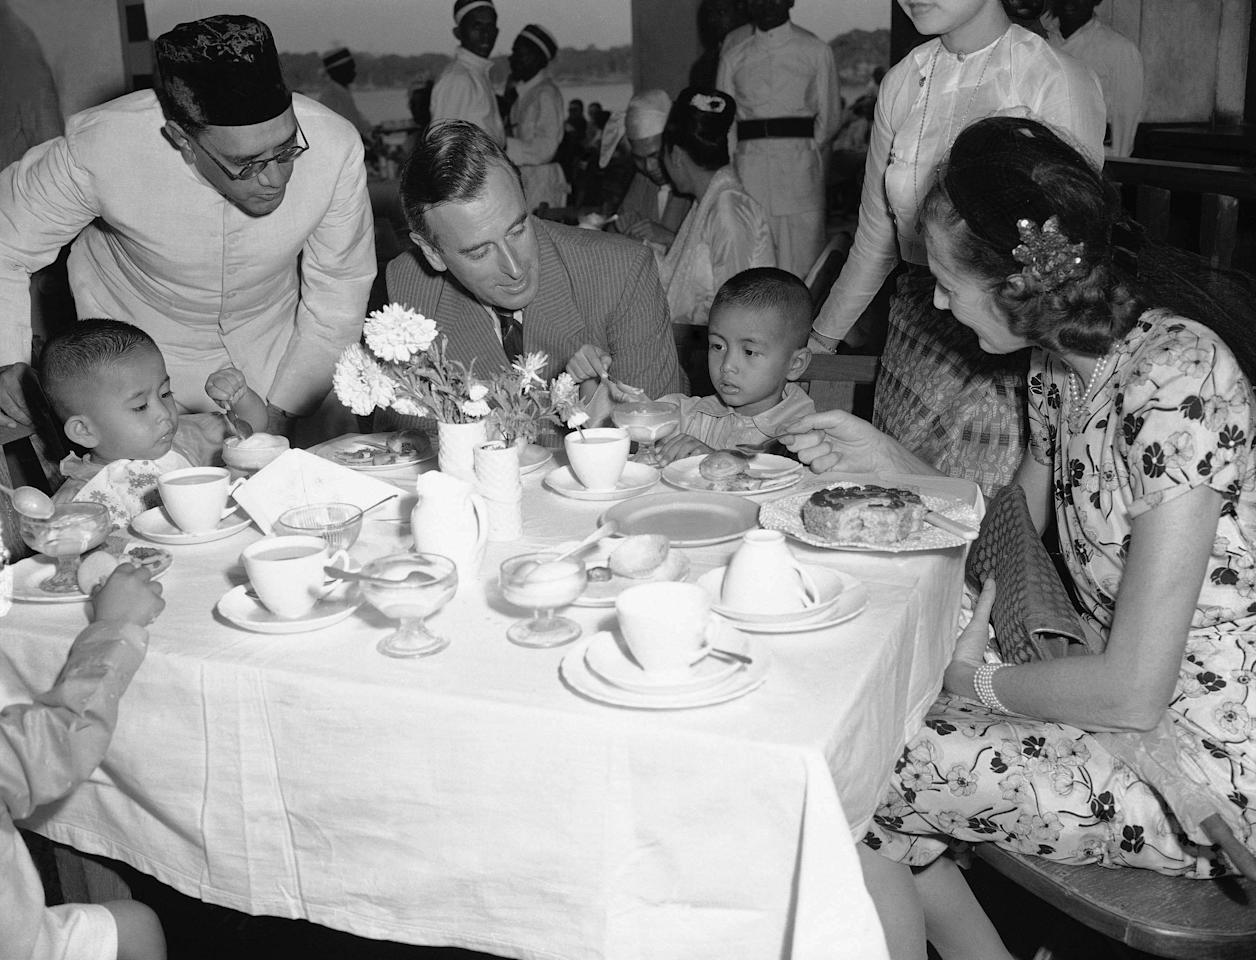 FILE - In this March 22, 1948 file photo, Lord Louis Mountbatten, governor general of India, center left, and his wife Edwina, right, watch as Aung San Suu Kyi, left, 2, and Aung San U, 4, eat ice cream at a party at the boat club in Rangoon, Burma. The children's father, Gen. Aung San, was assassinated on July 19, 1947 after he was slated to be of a projected independent Burma. (AP Photo/MD)